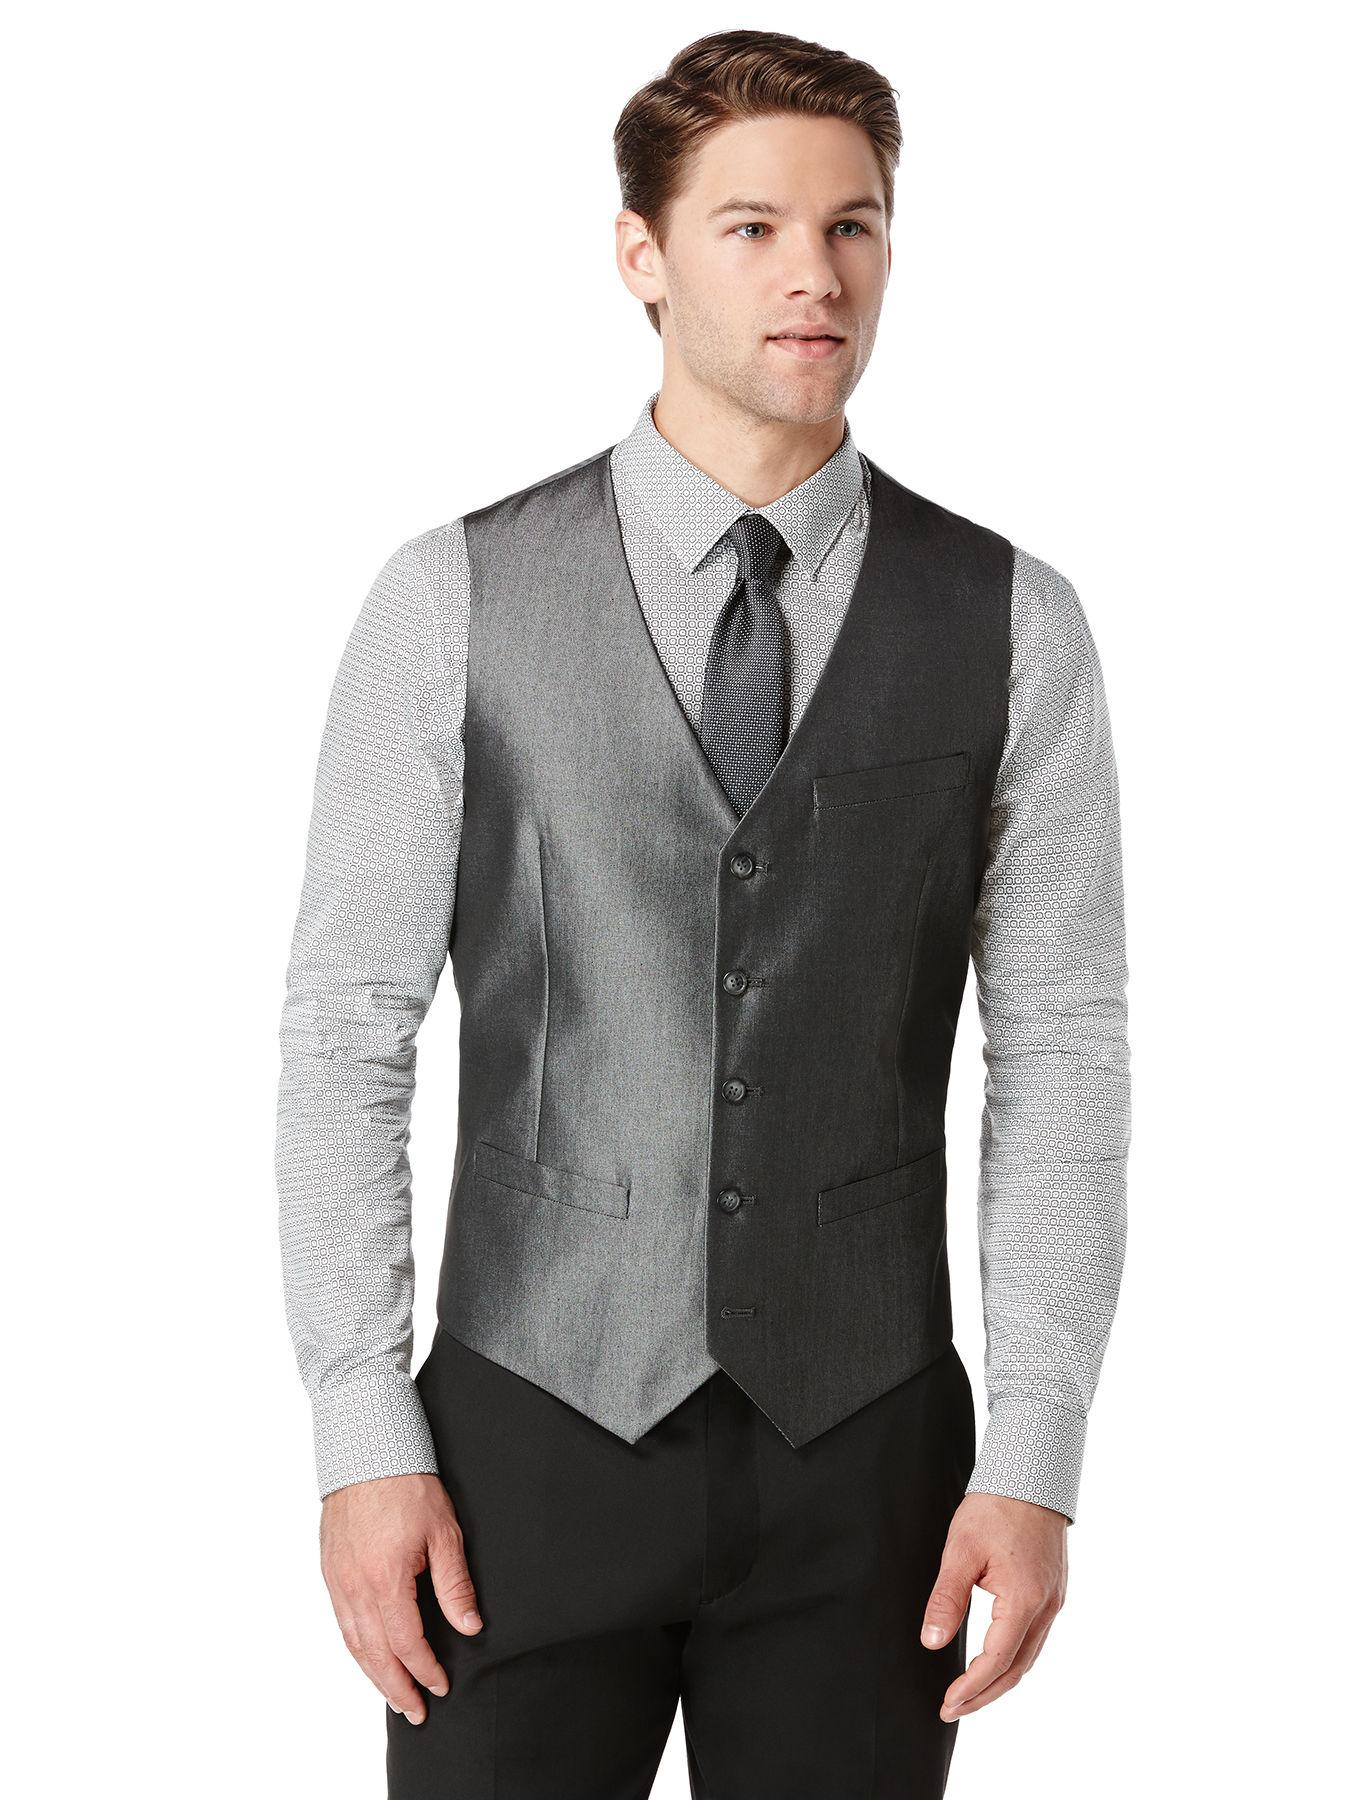 Shop for big & tall men's vests including dress vests, casual vests & vest jackets. See the latest styles & brands of vests in XXL & plus sizes from Men's Wearhouse. Big & Tall. All Big & Tall Suits Blazers & Sport Coats Dress Shirts Casual Shirts Pants & Shorts Jeans Vests Ties Sweaters Tuxedos & Formalwear Outerwear Custom Clothing Big.